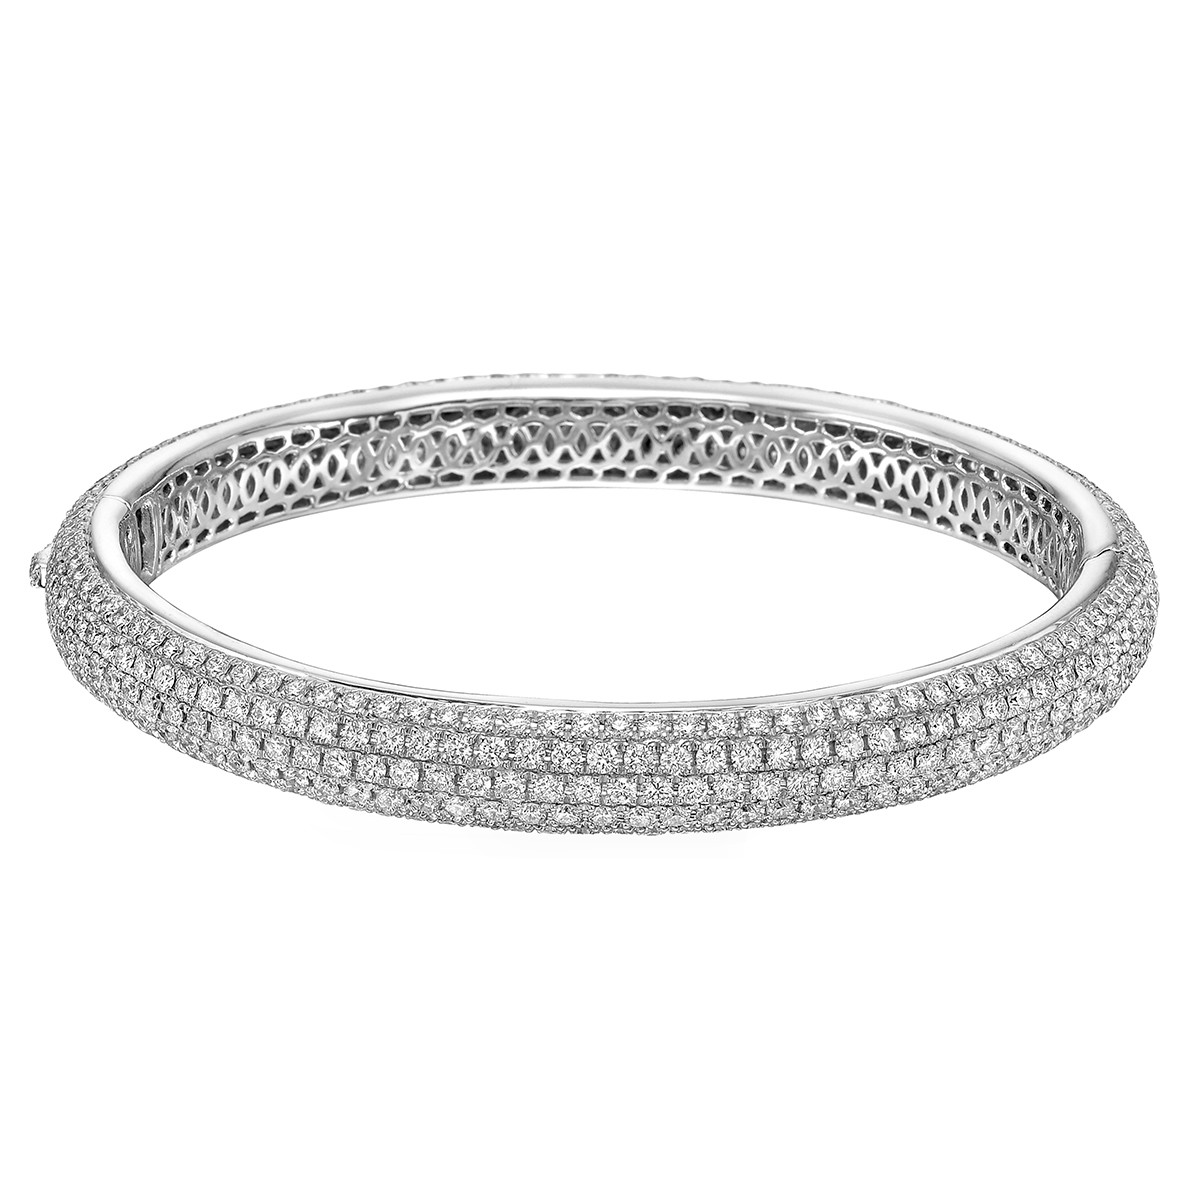 Pavé Diamond Domed Bangle (10.94 ct tw)